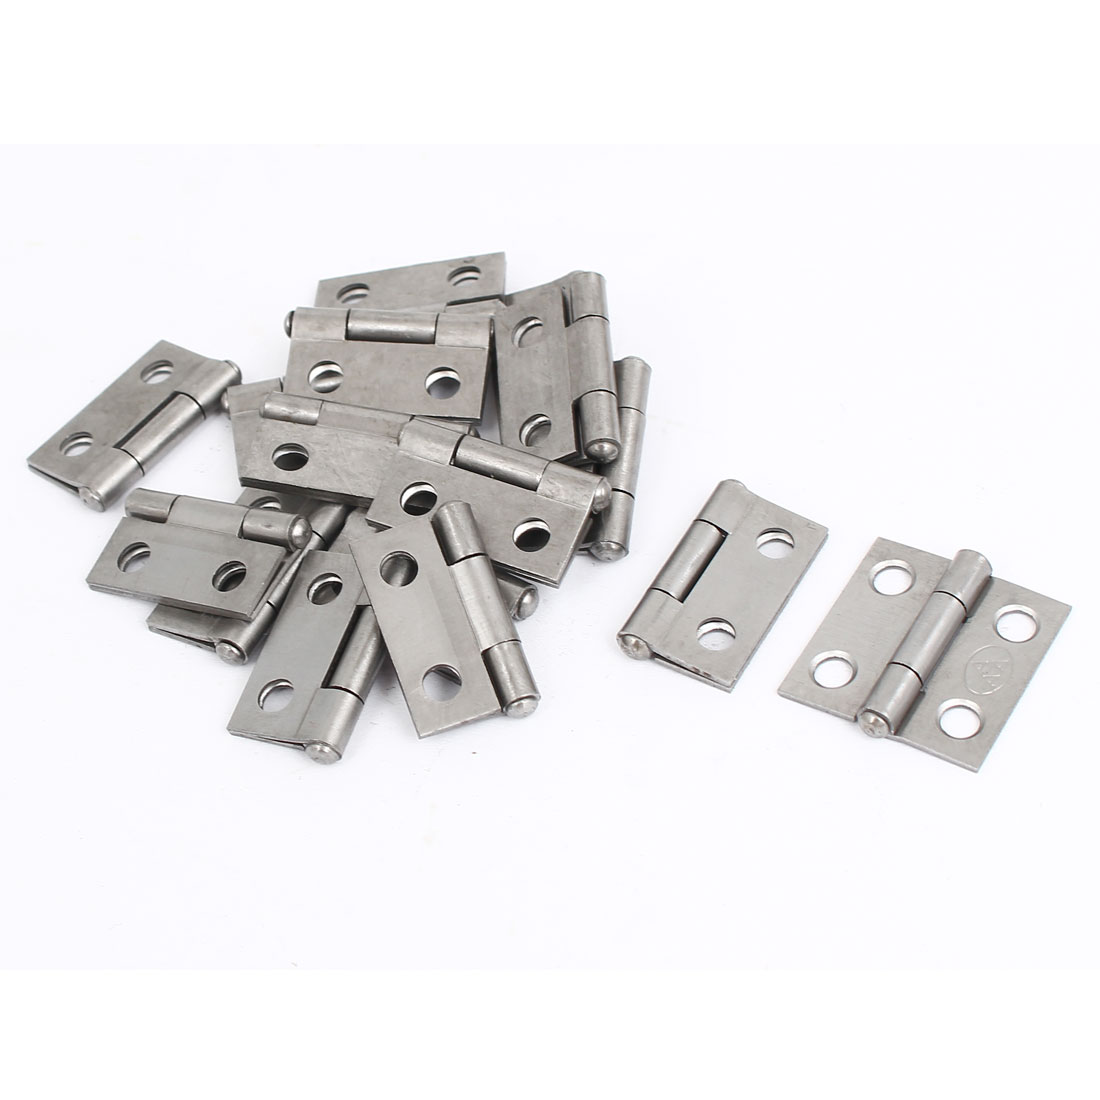 """Uxcell Cabinet Furniture Hardware Folding Door  Hinges Silver Gray 1"""" Long 16pcs - image 1 of 1"""